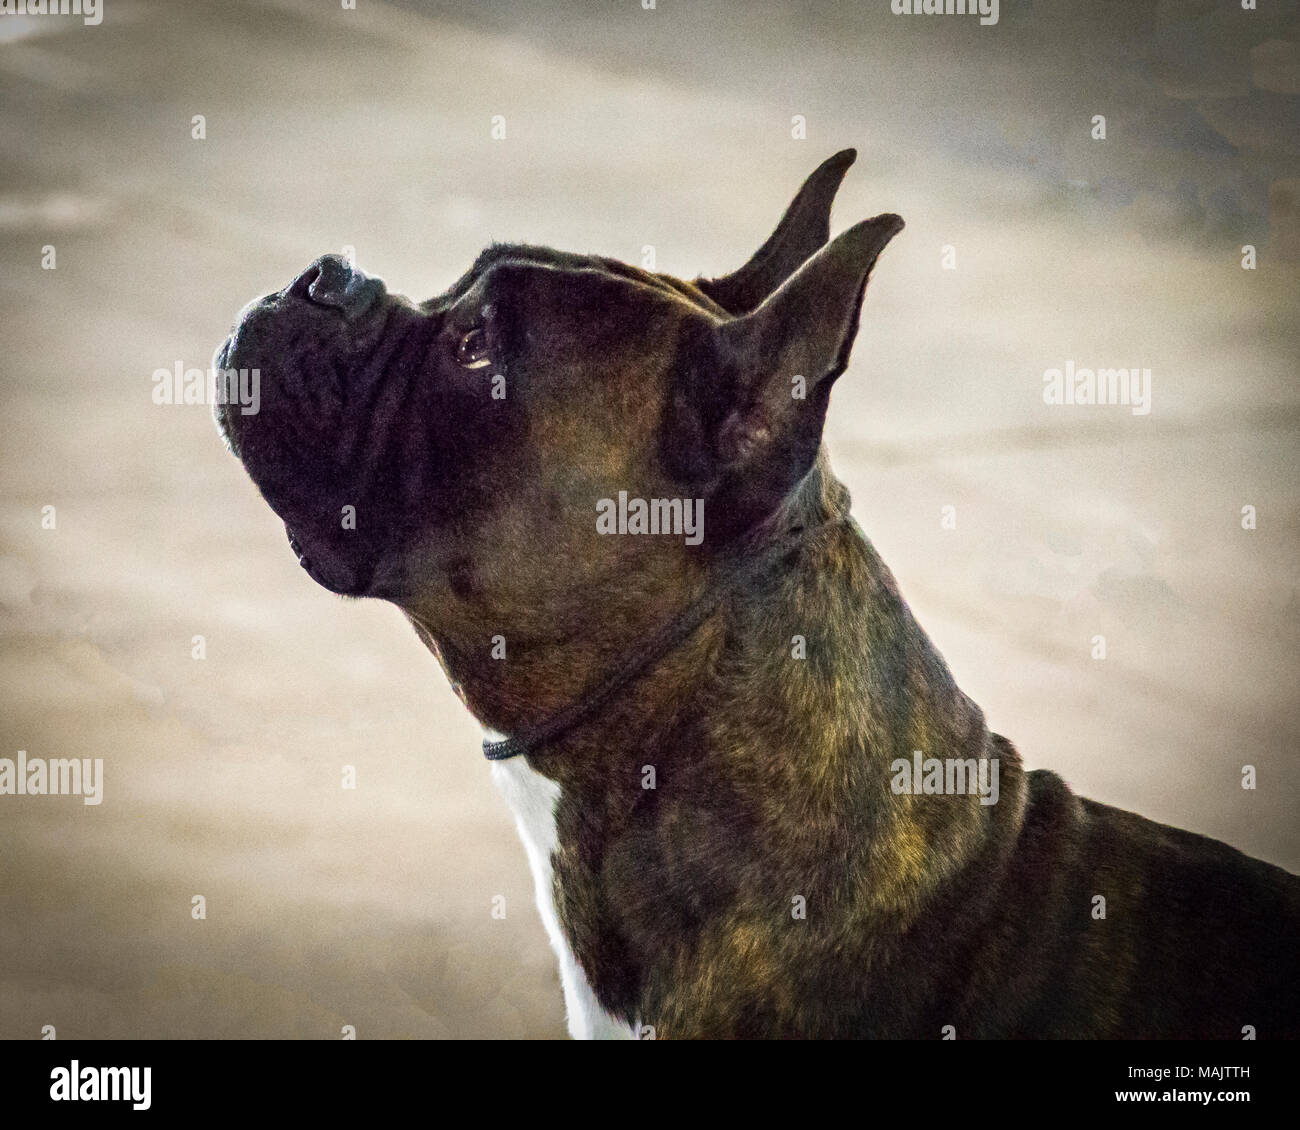 A head-shot portrait of a boxer dog at a dog show Stock Photo